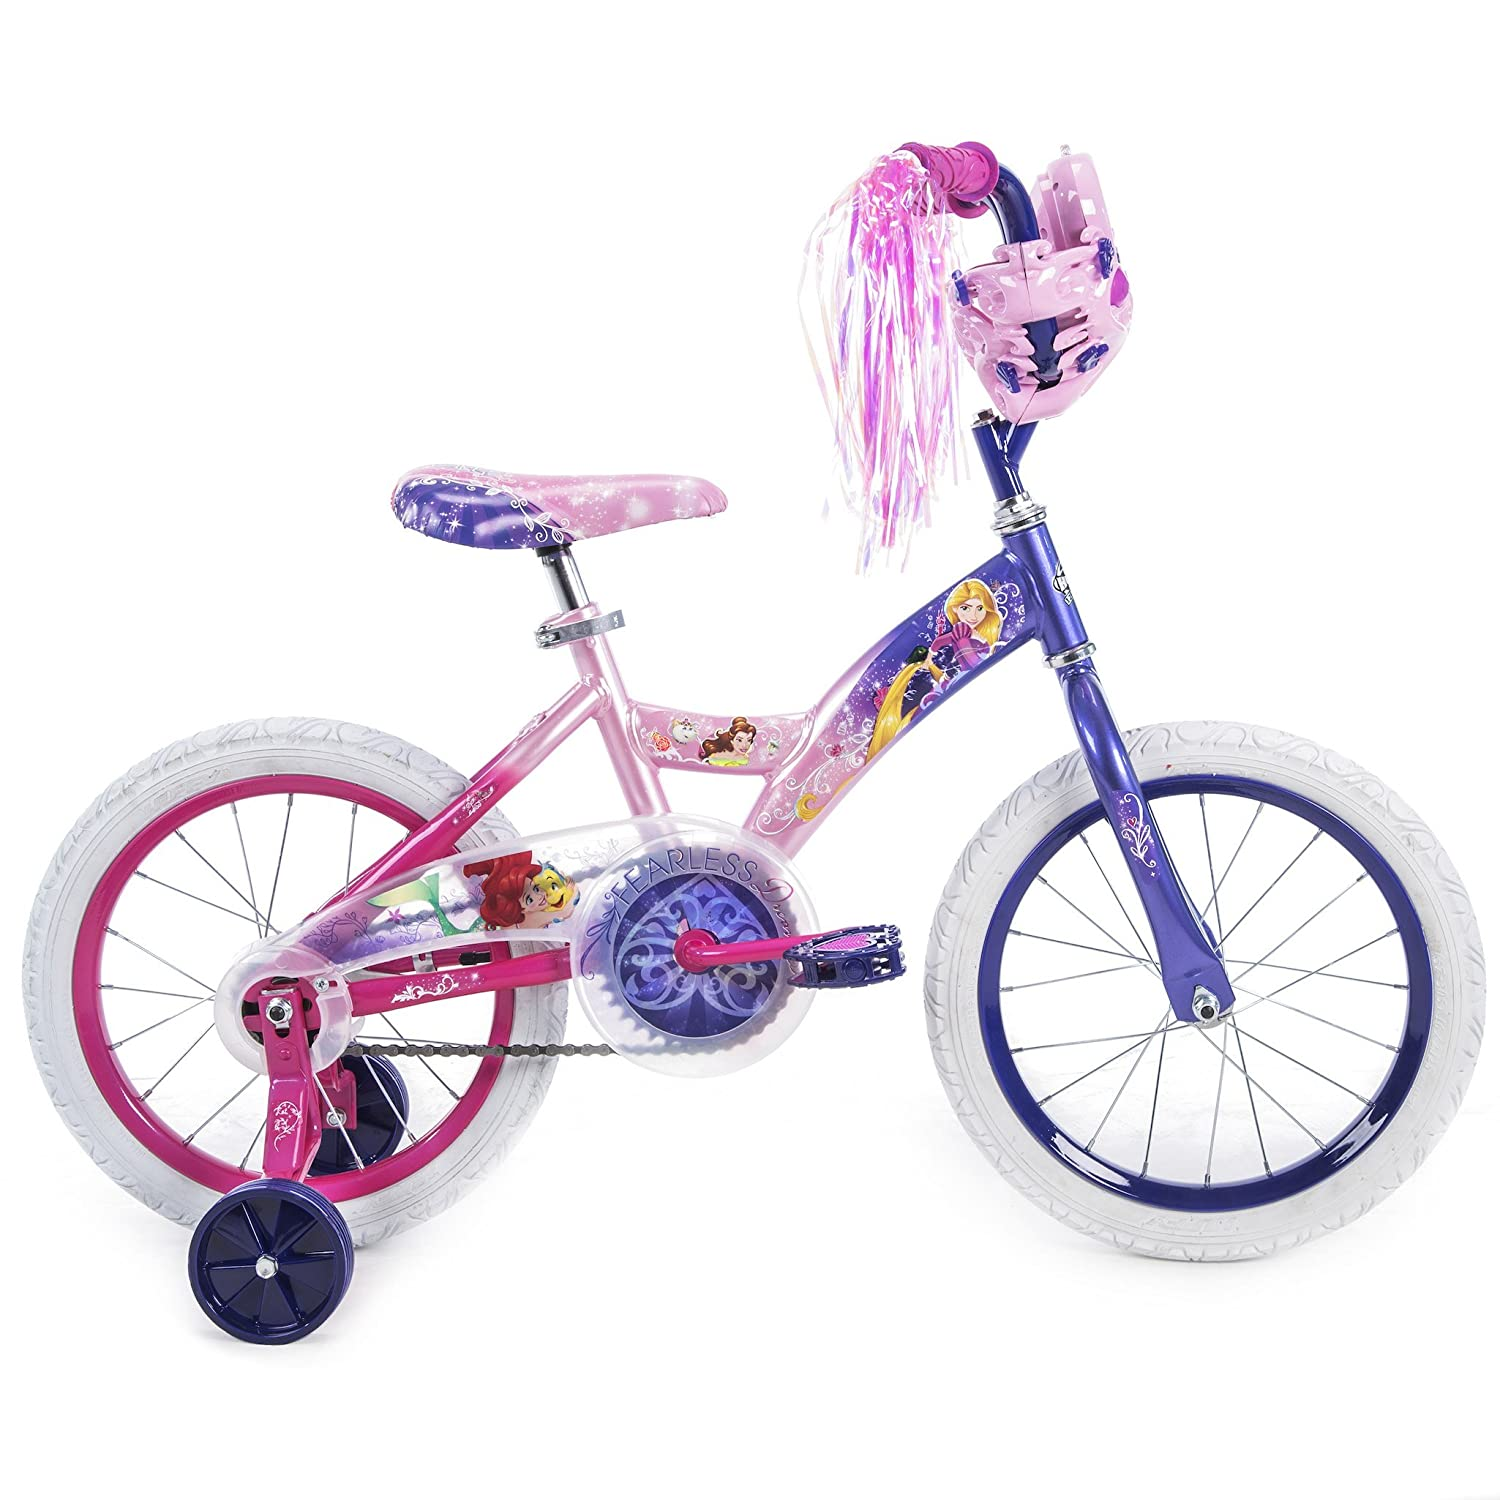 d2aa9cc2db3 Amazon.com : Girls 16 inch Huffy Disney Princess Bike : Sports & Outdoors